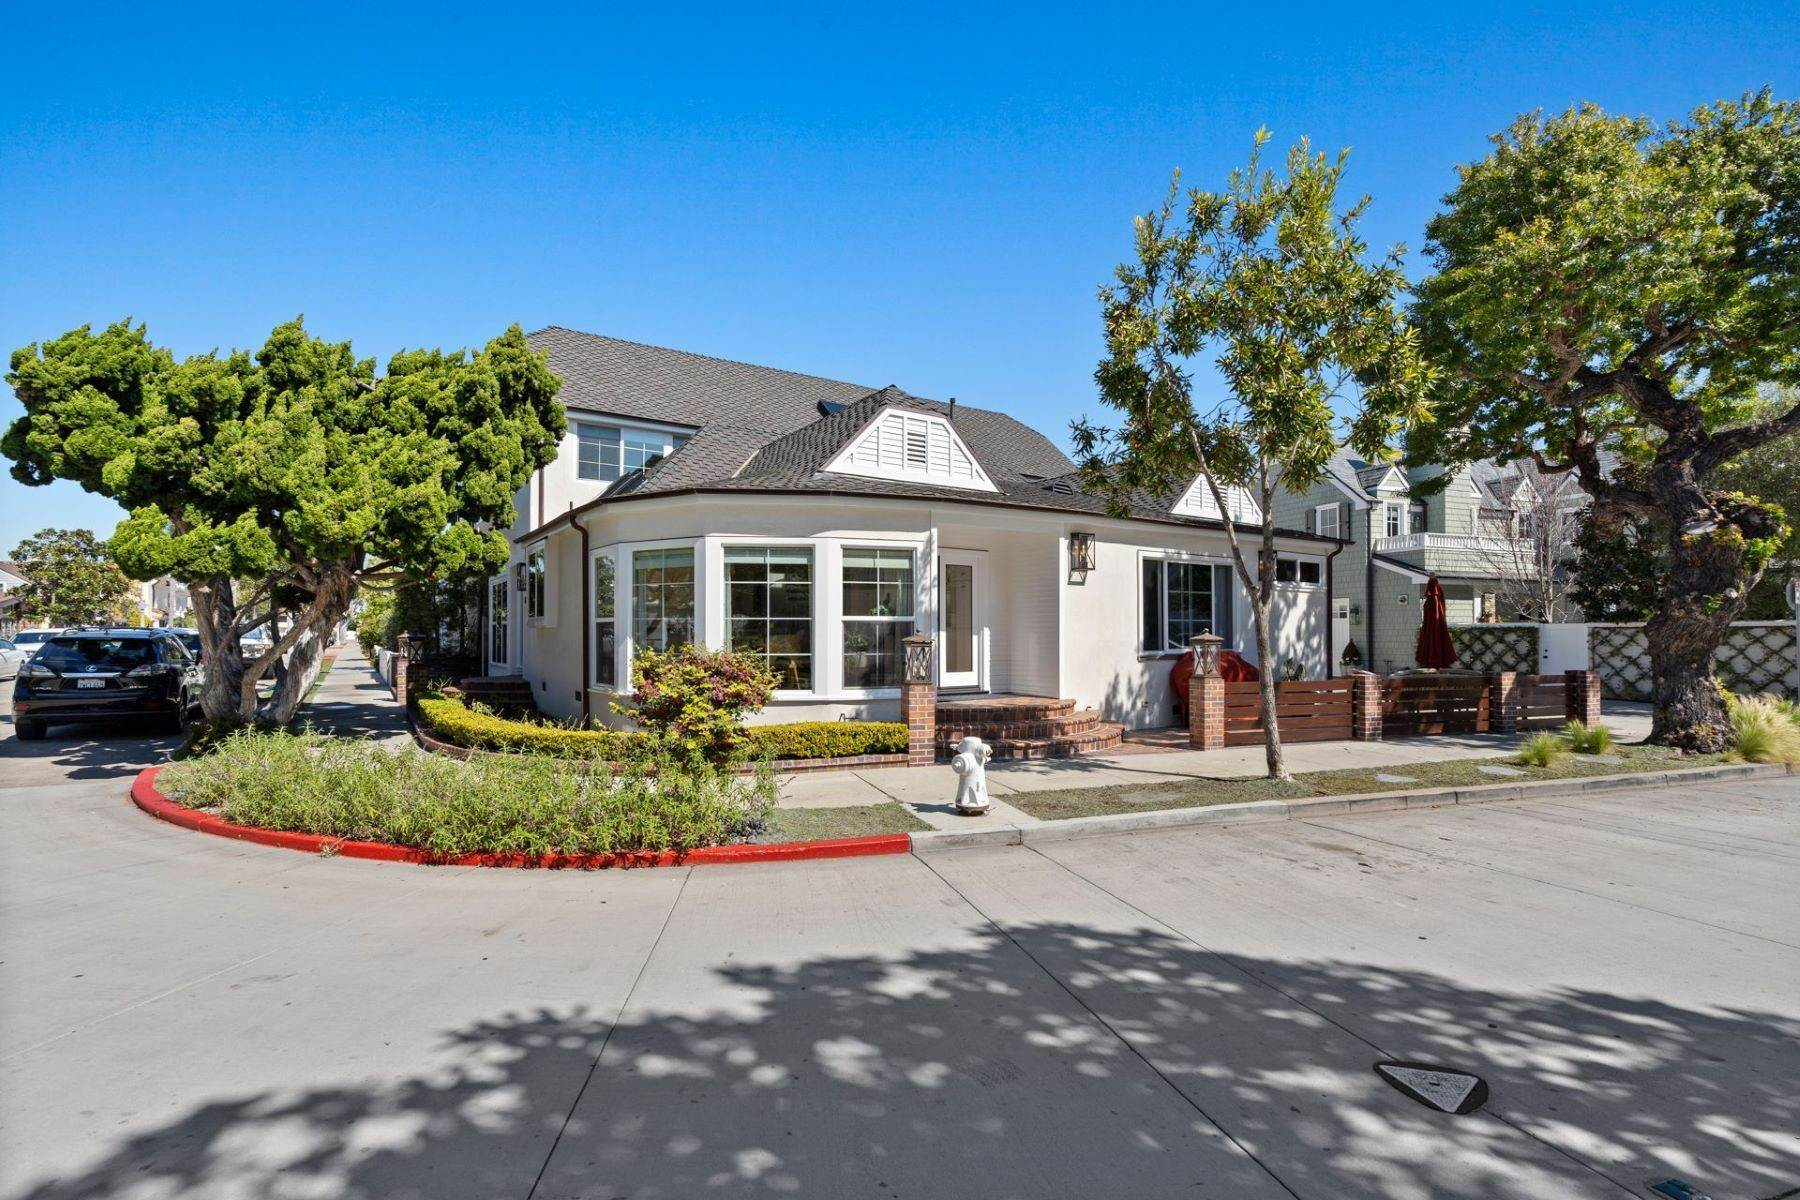 Single Family Homes for Sale at 402 Seville Avenue Newport Beach, California 92661 United States